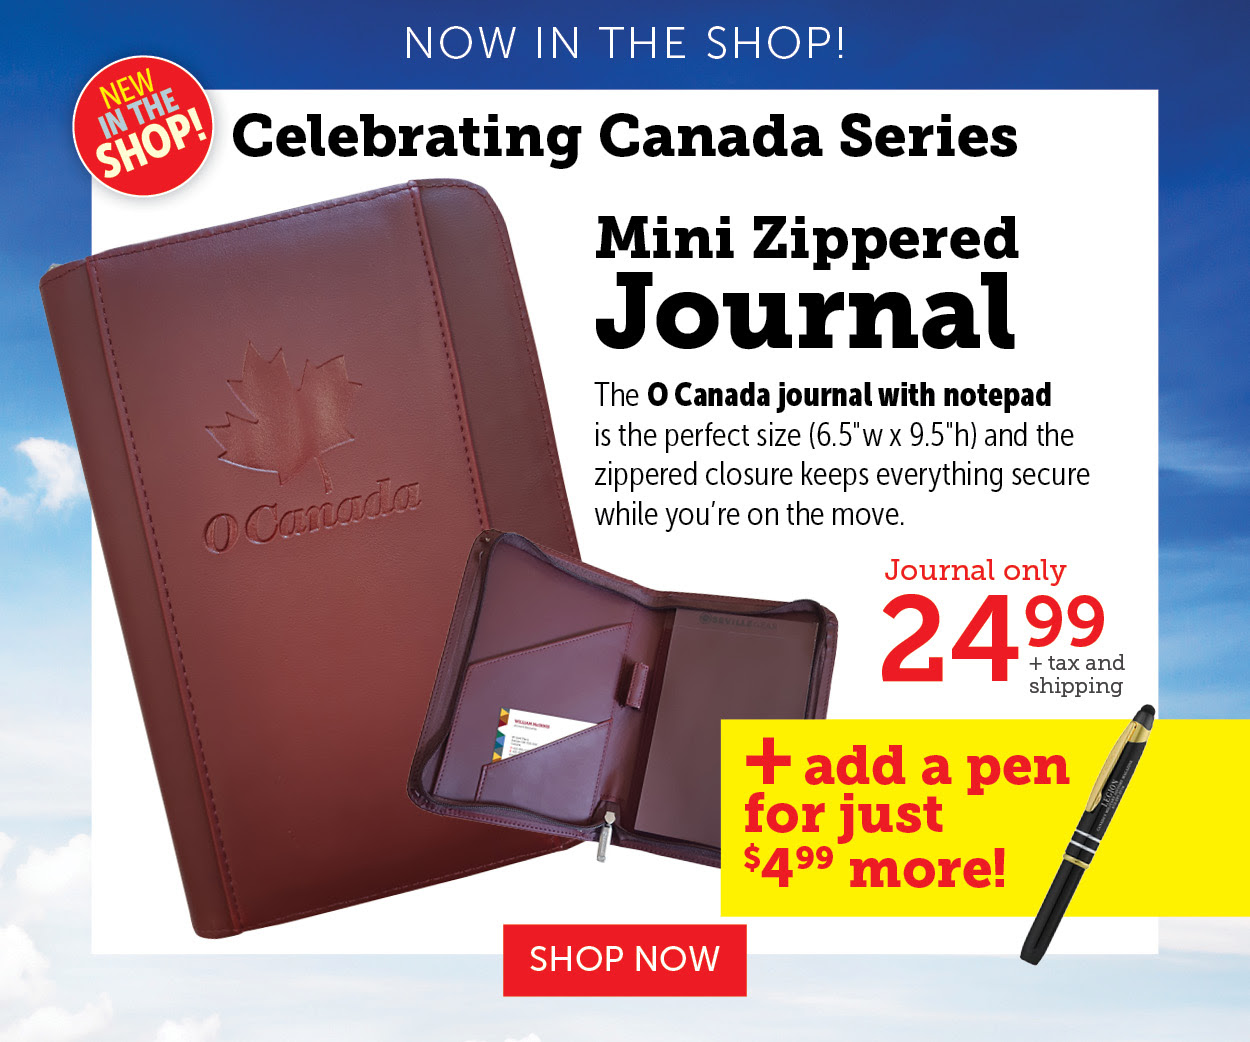 Mini Zippered Journal